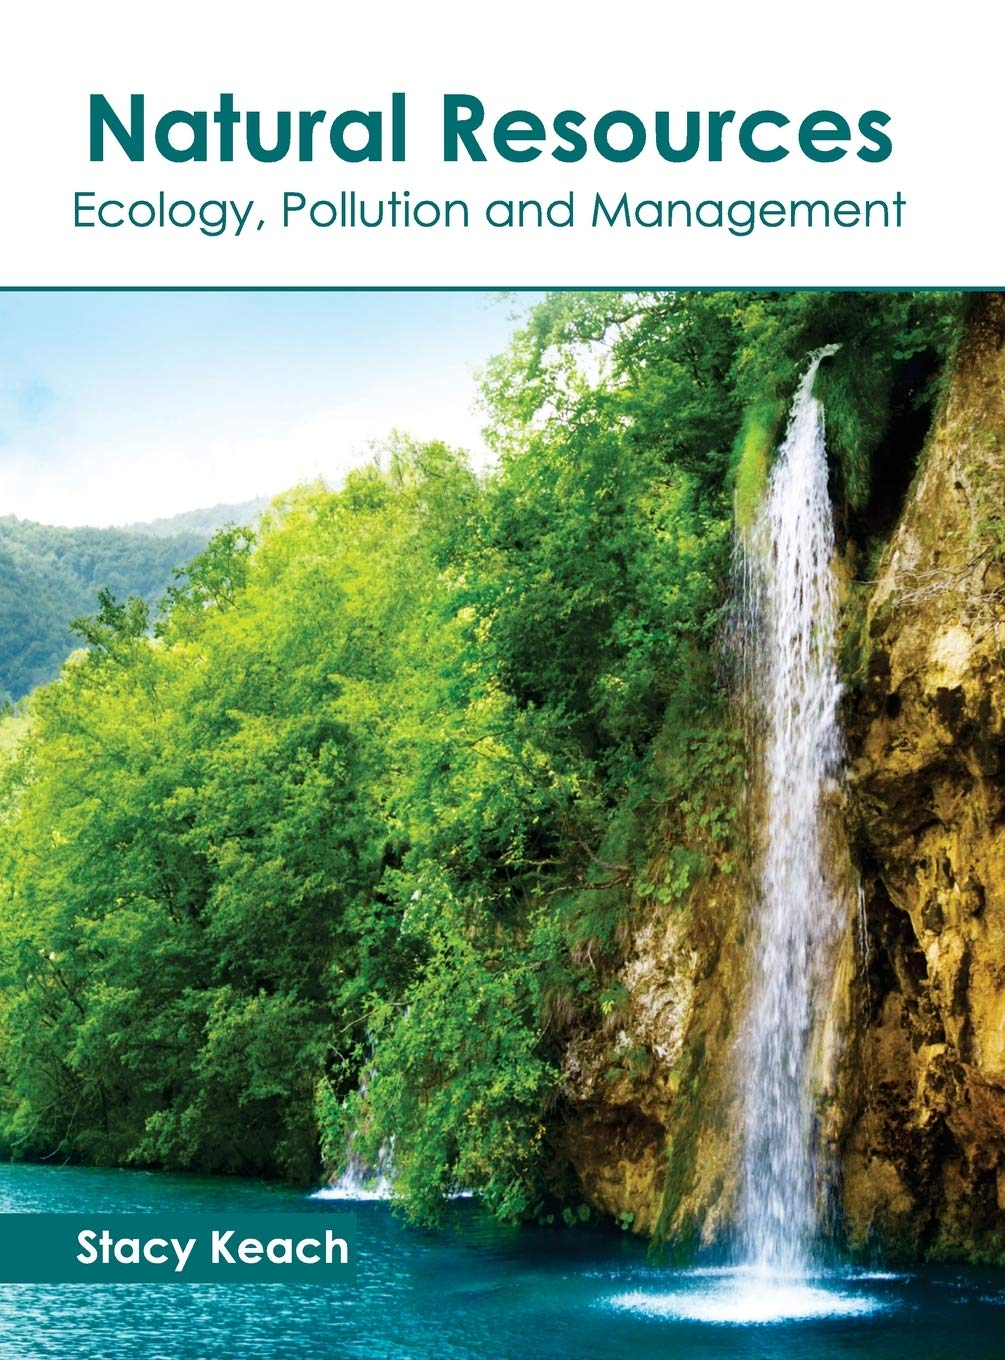 Buy Natural Resources Ecology Pollution And Management Book Online At Low Prices In India Natural Resources Ecology Pollution And Management Reviews Ratings Amazon In